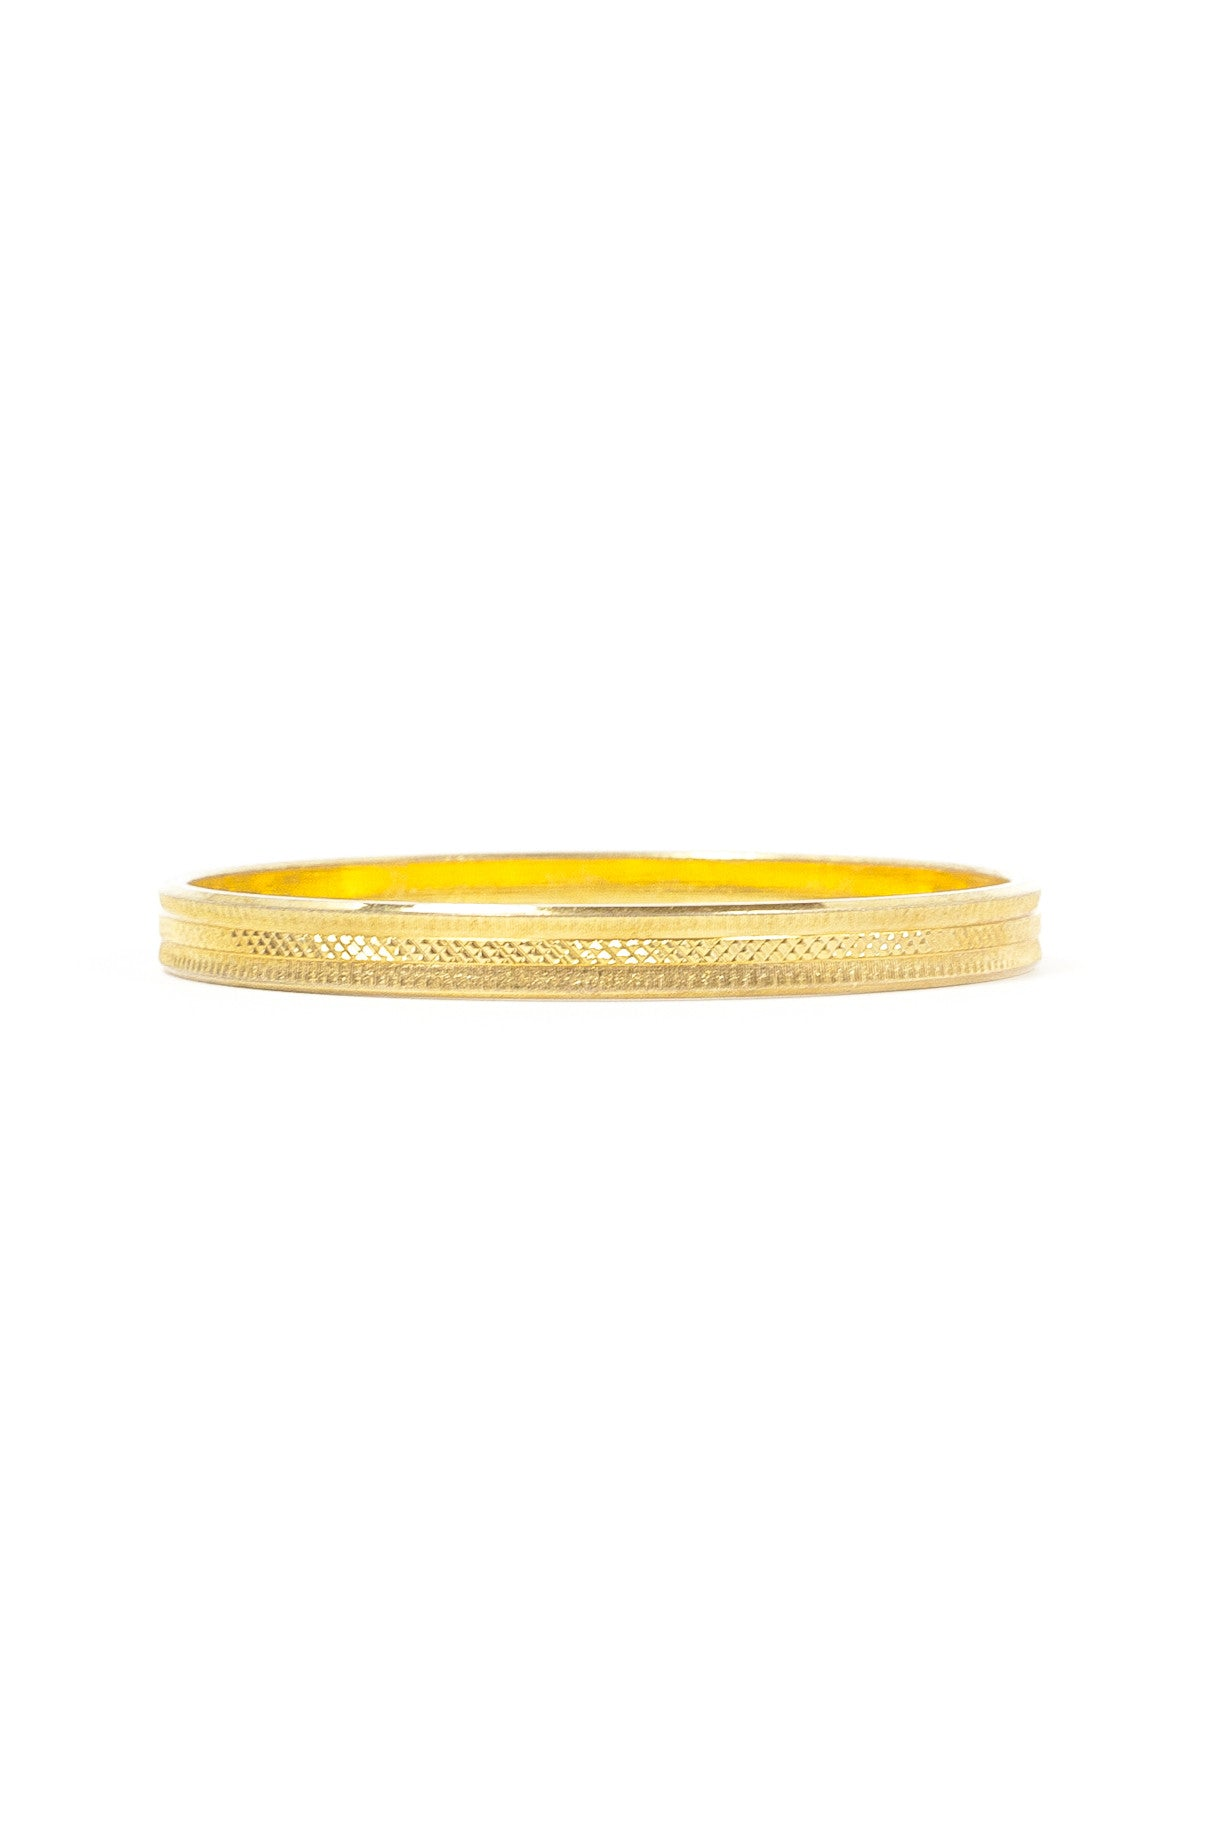 70's__Monet__Etched Bangle